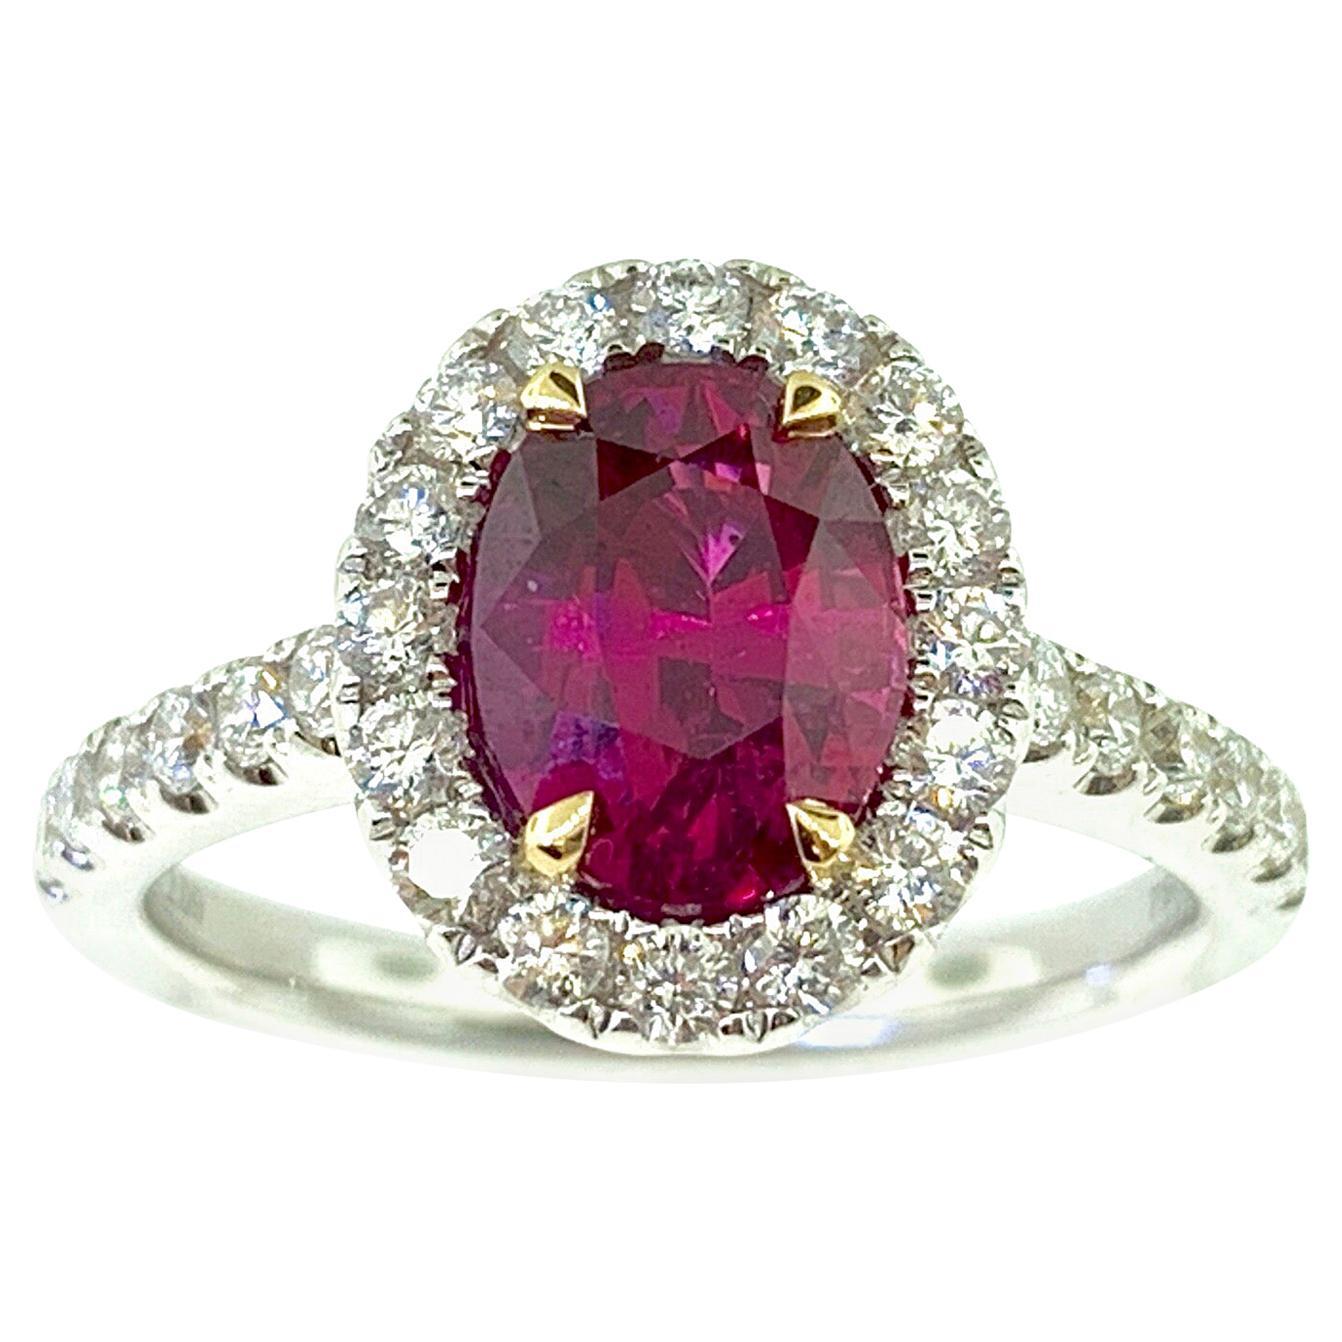 GIA Certified 2.09 Carat Oval Ruby and Diamond Cocktail Ring